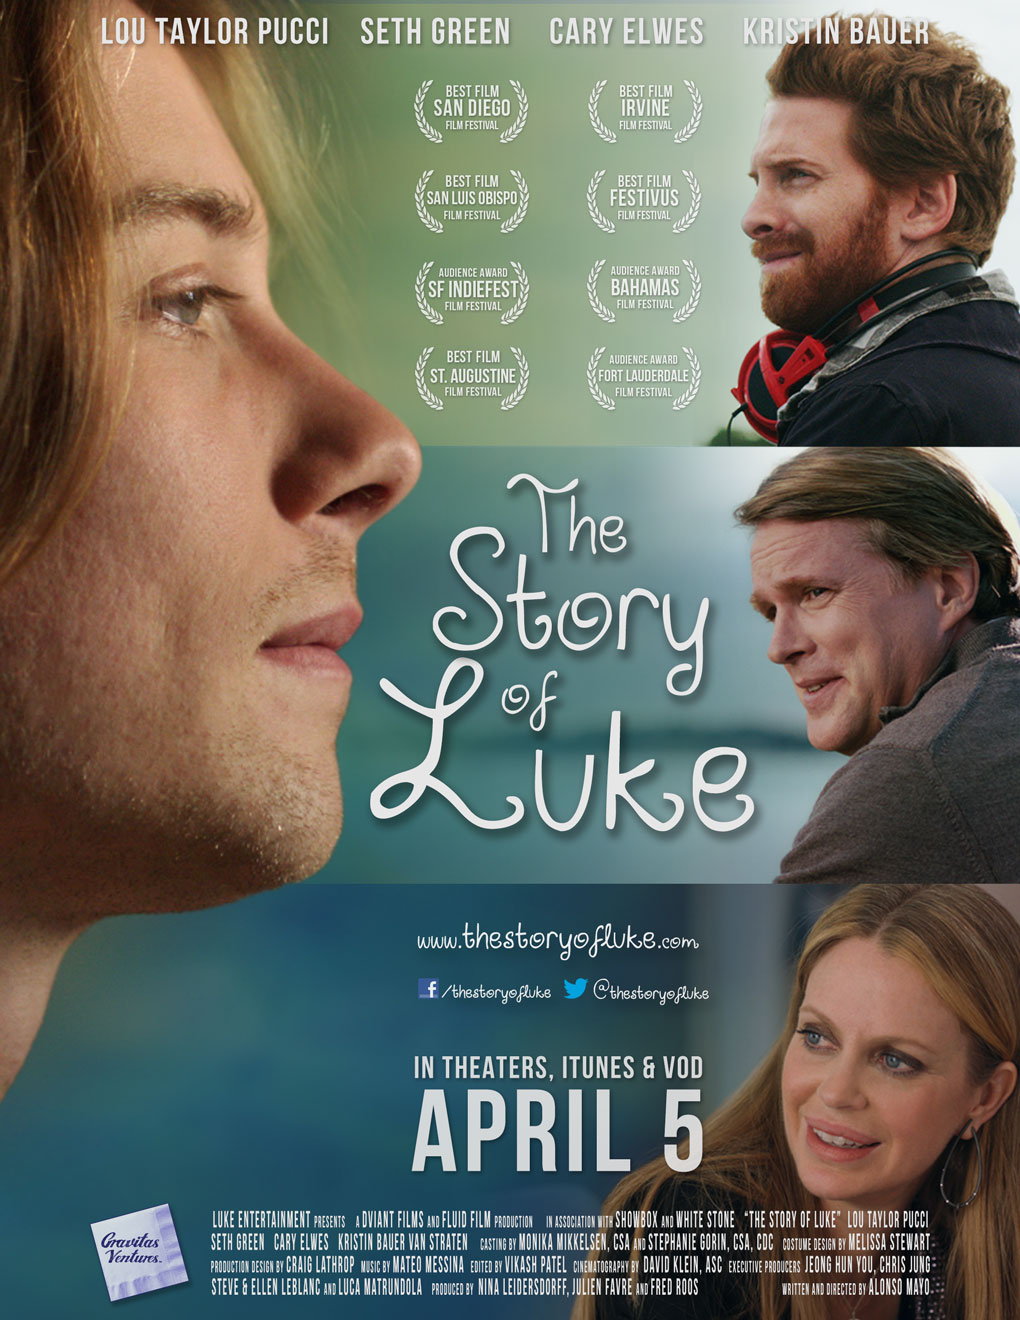 The-Story-of-Luke-Poster-Social